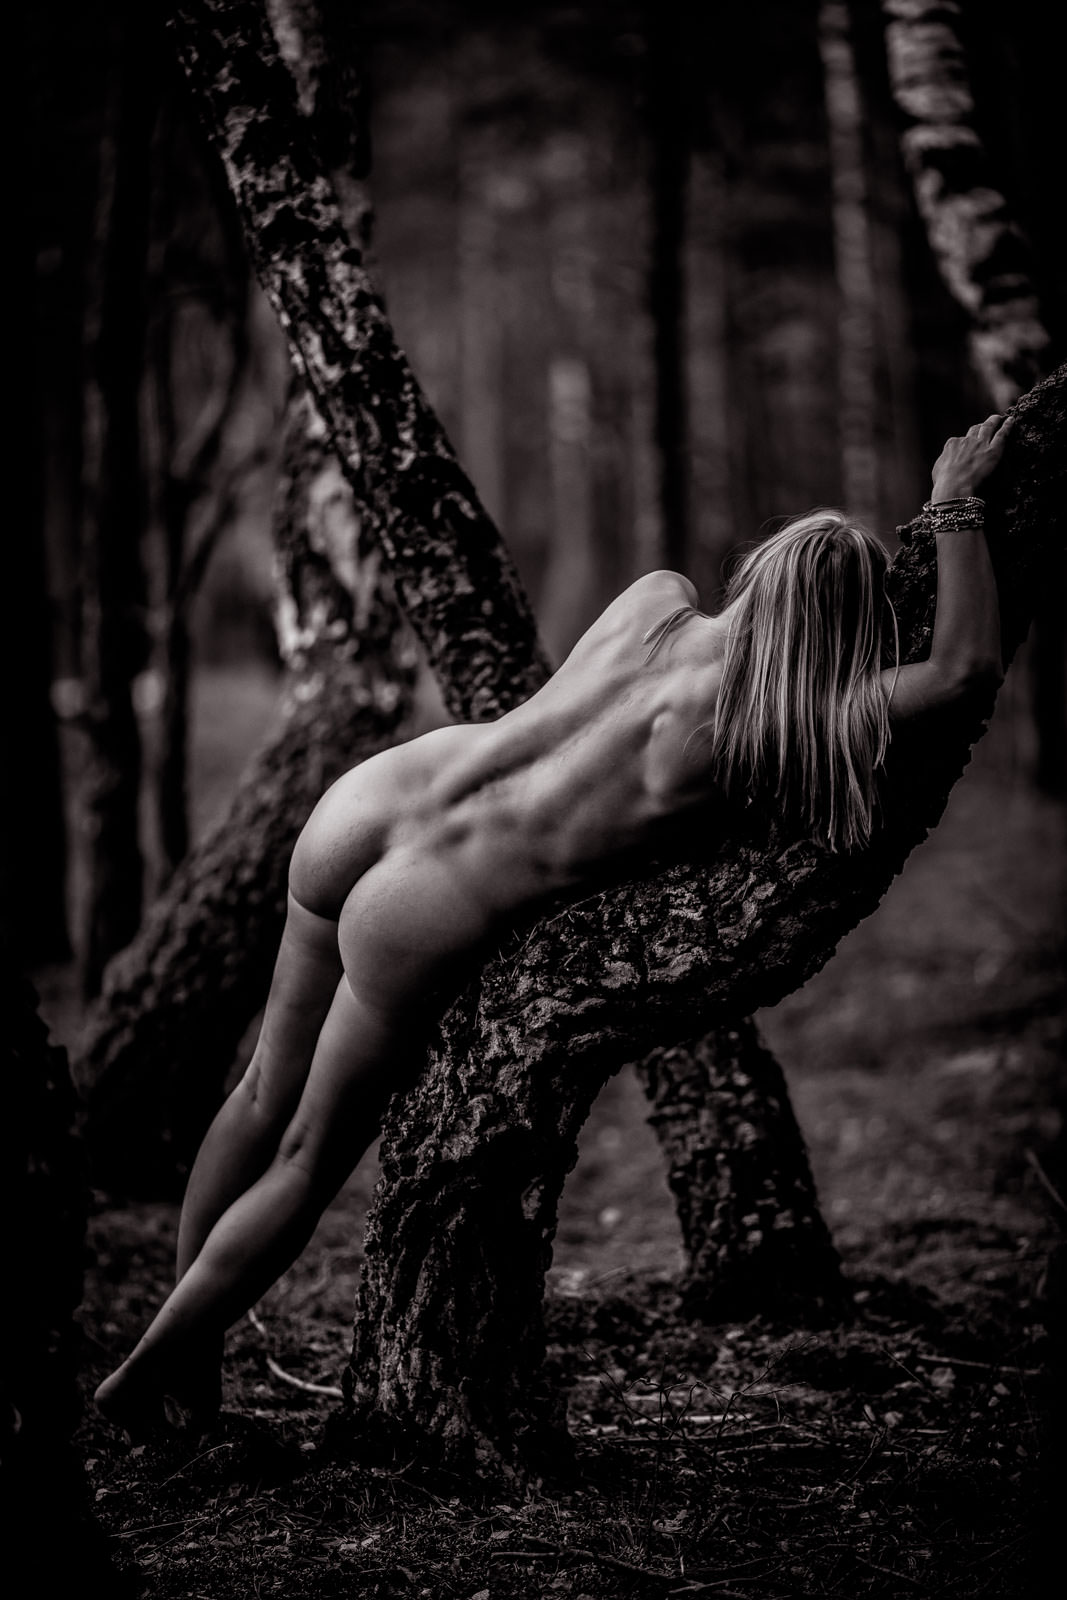 nude photo forest iga koczorowska 9